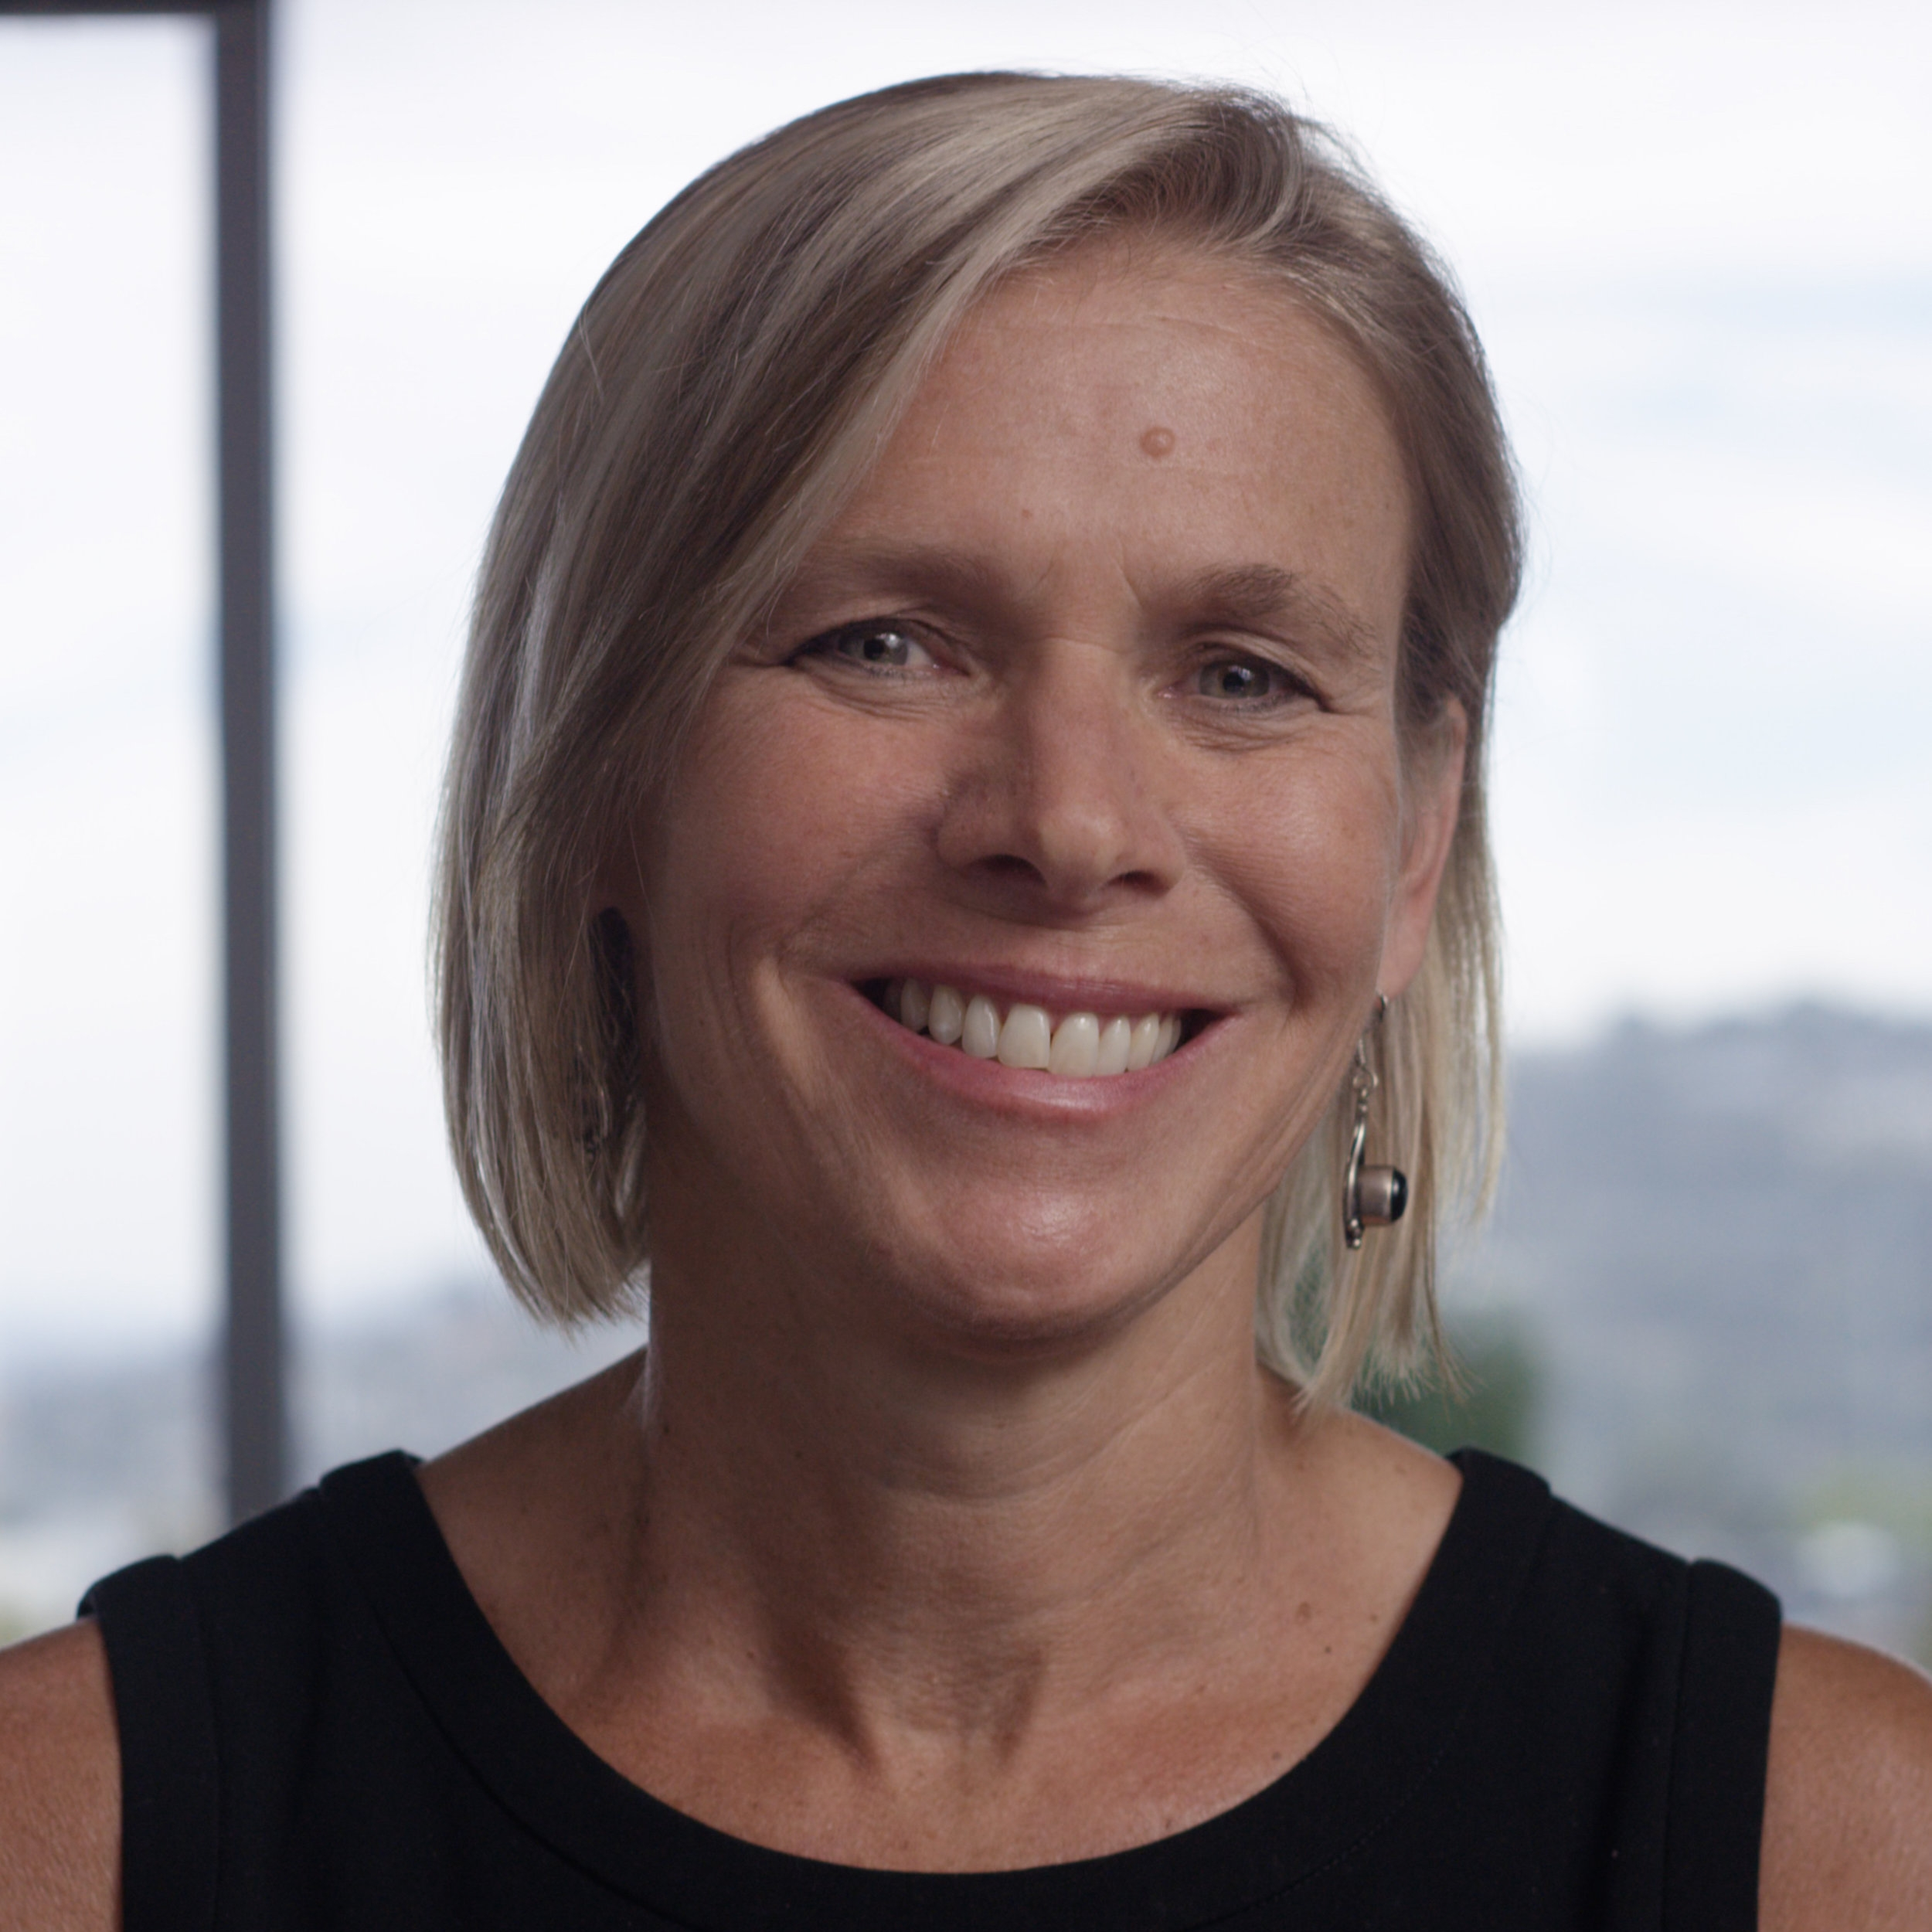 Cathy Zoi has spent 30 years in the energy and environmental sectors at the nexus between technology, management, and policy. In November 2017, Cathy was appointed CEO of EVgo, America's leading electric vehicle fast-charging company. She is also Executive Chair of Odyssey Energy Solutions, a software platform she co- founded that serves the energy access sector. Cathy was founding CEO of Frontier Power, a rural electrification company incubated by SunEdison. She served in the Obama Administration as Assistant Secretary and Acting Under Secretary at the Department of Energy, where she oversaw more than $30 billion in energy investments. Cathy was the founding CEO of both the Alliance for Climate Protection, established and chaired by U.S. Vice President Al Gore; and the Sustainable Energy Development Authority, a $50m fund to commercialize clean energy technologies in Australia. Cathy has been an energy investor at Silver Lake and Bayard Capital, a board member for Ice Energy, SES and Pacific Solar, and a management consultant at ICF and Next Energy. In the early 1990s, she was Chief of Staff for Environmental Policy in the Clinton White House and she pioneered the Energy Star program while at the US EPA. Cathy has been an adjunct professor and Precourt Energy Scholar at Stanford University, where she taught and did research between 2012-17. Cathy has a B.S. in Geology (Honors/Magna cum laude) from Duke University and a M.S. in engineering from Dartmouth.